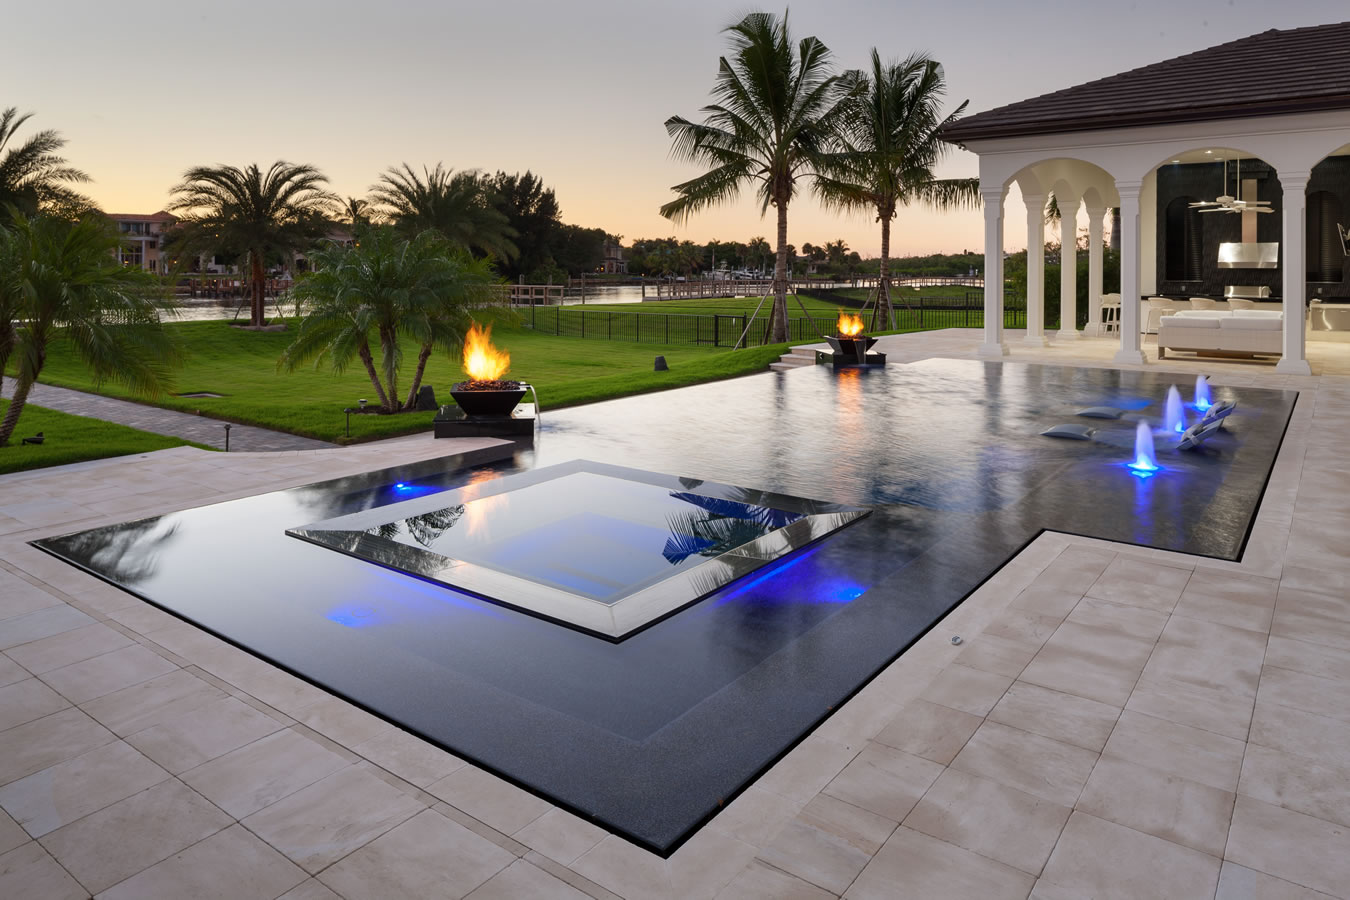 Overflow swimming pool design home design ideas for Overflow pool design